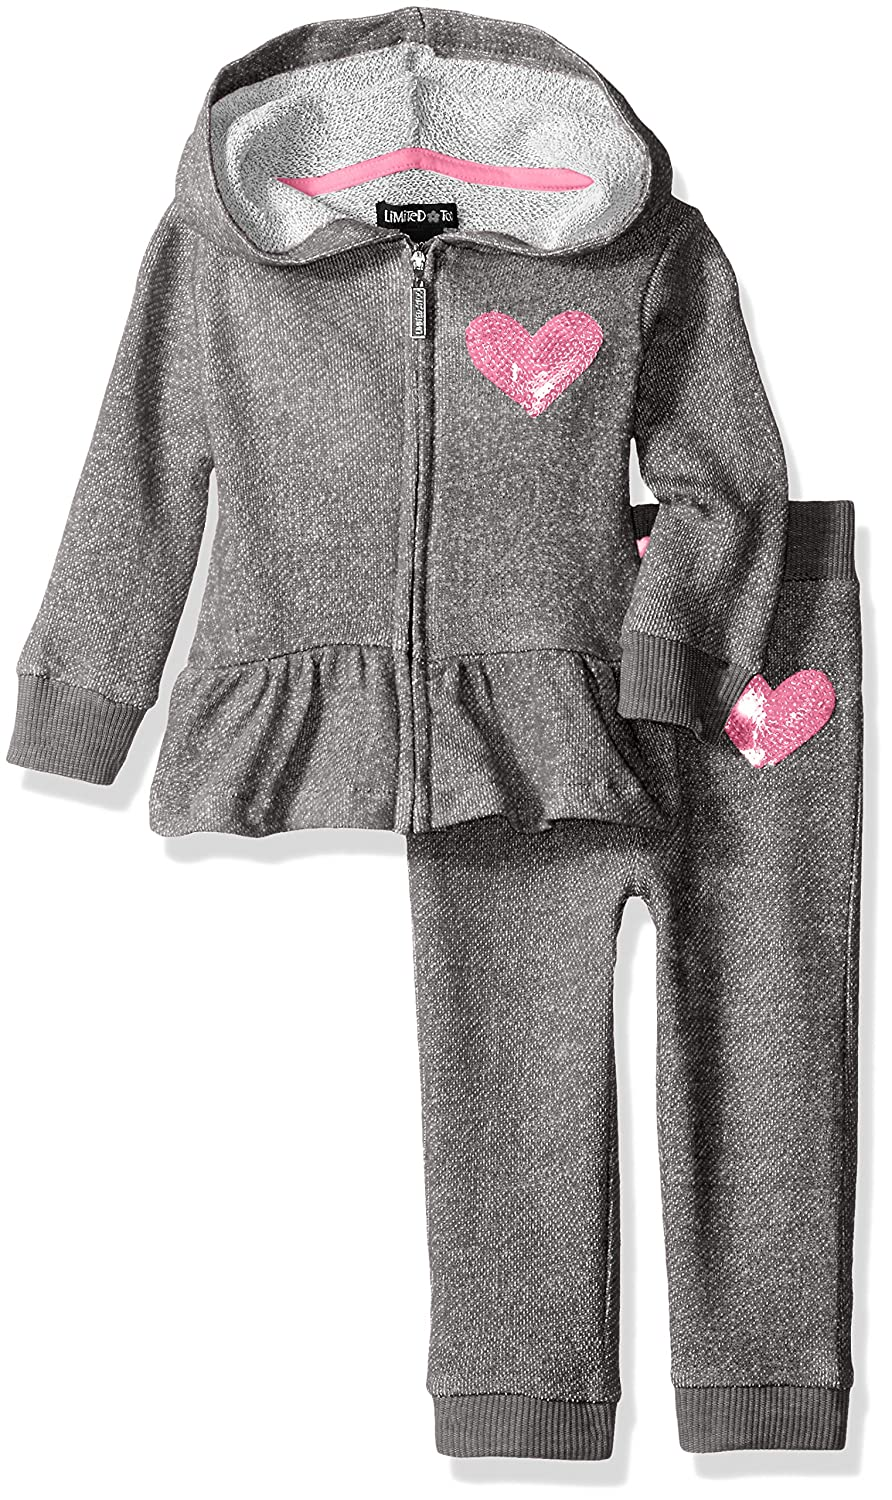 Amazon.com: Limited Too Baby Girls 2 Piece Youve Got Heart French Terry Set: Clothing